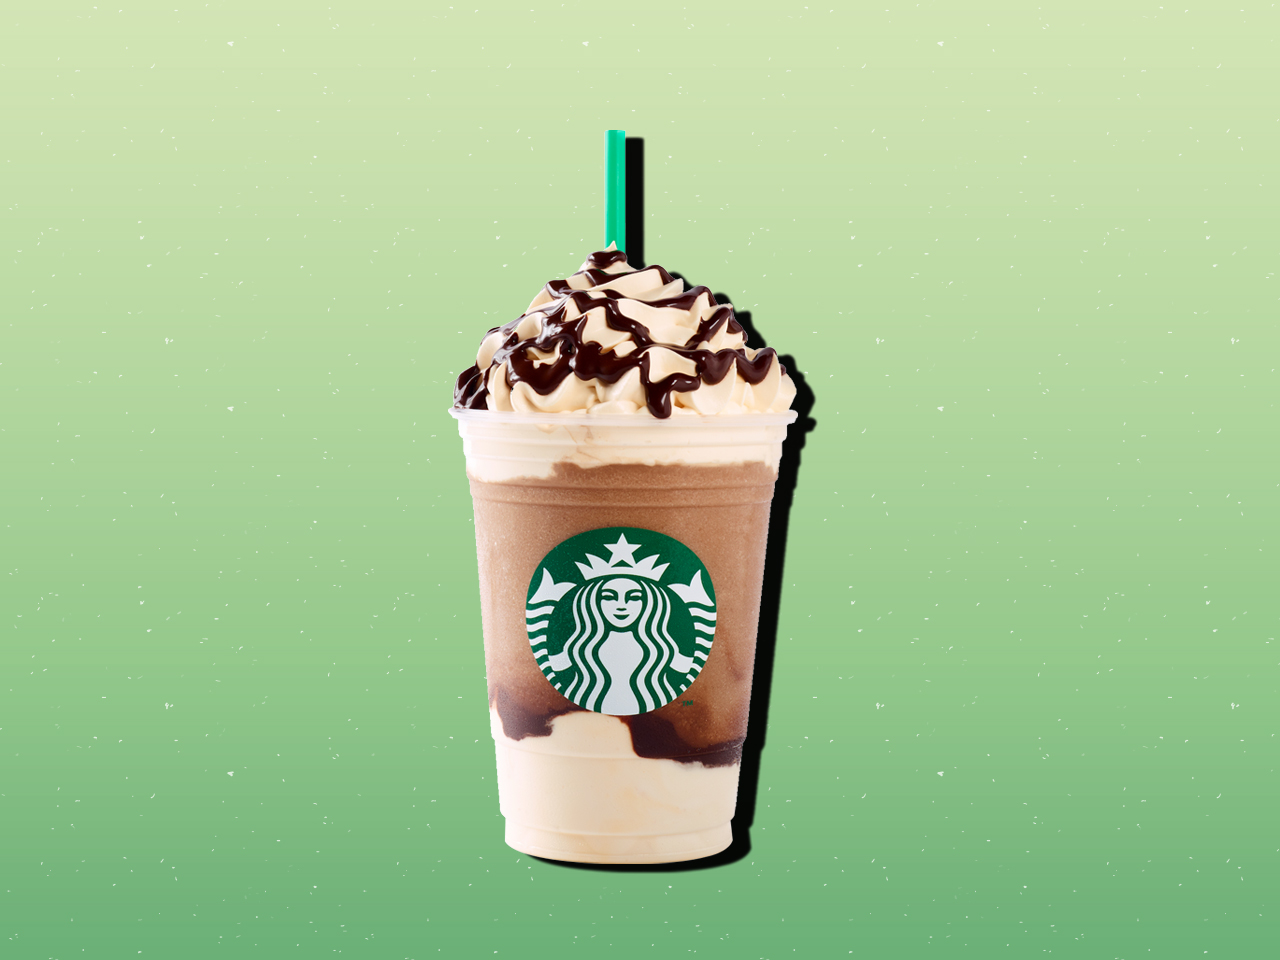 Starbucks mocha frappuccino on green background